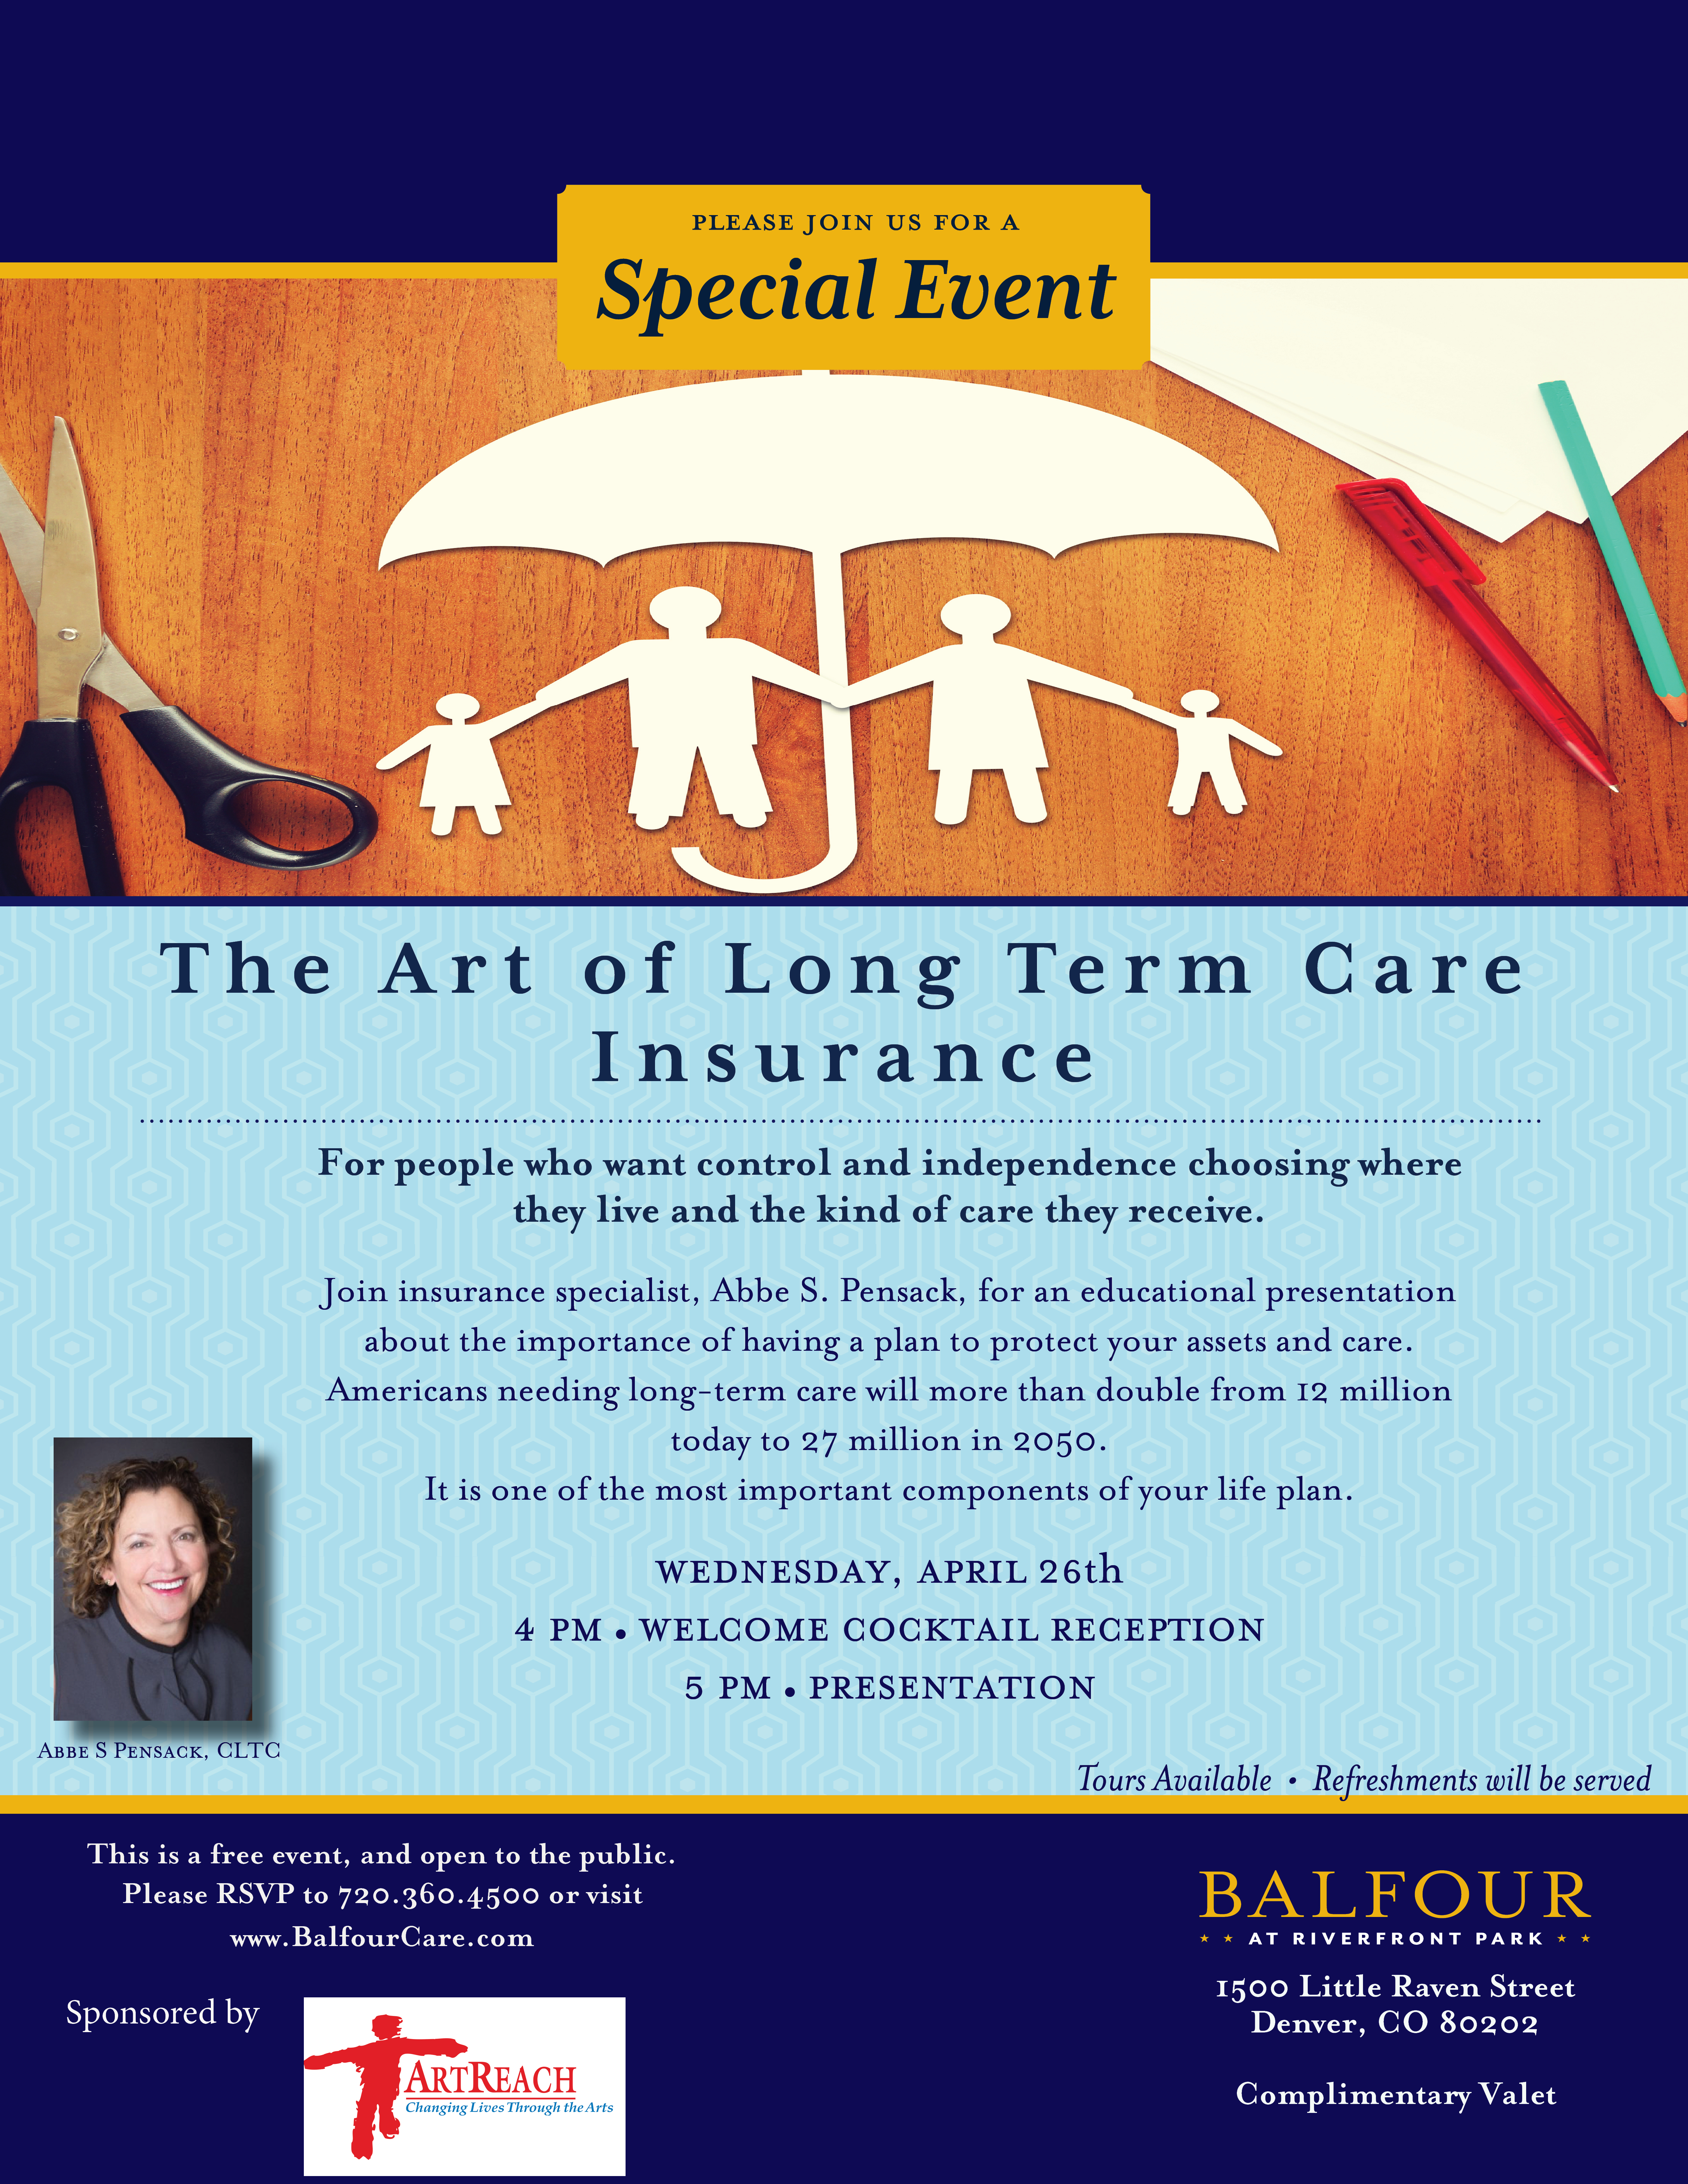 The Art of Long Term Care Insurance